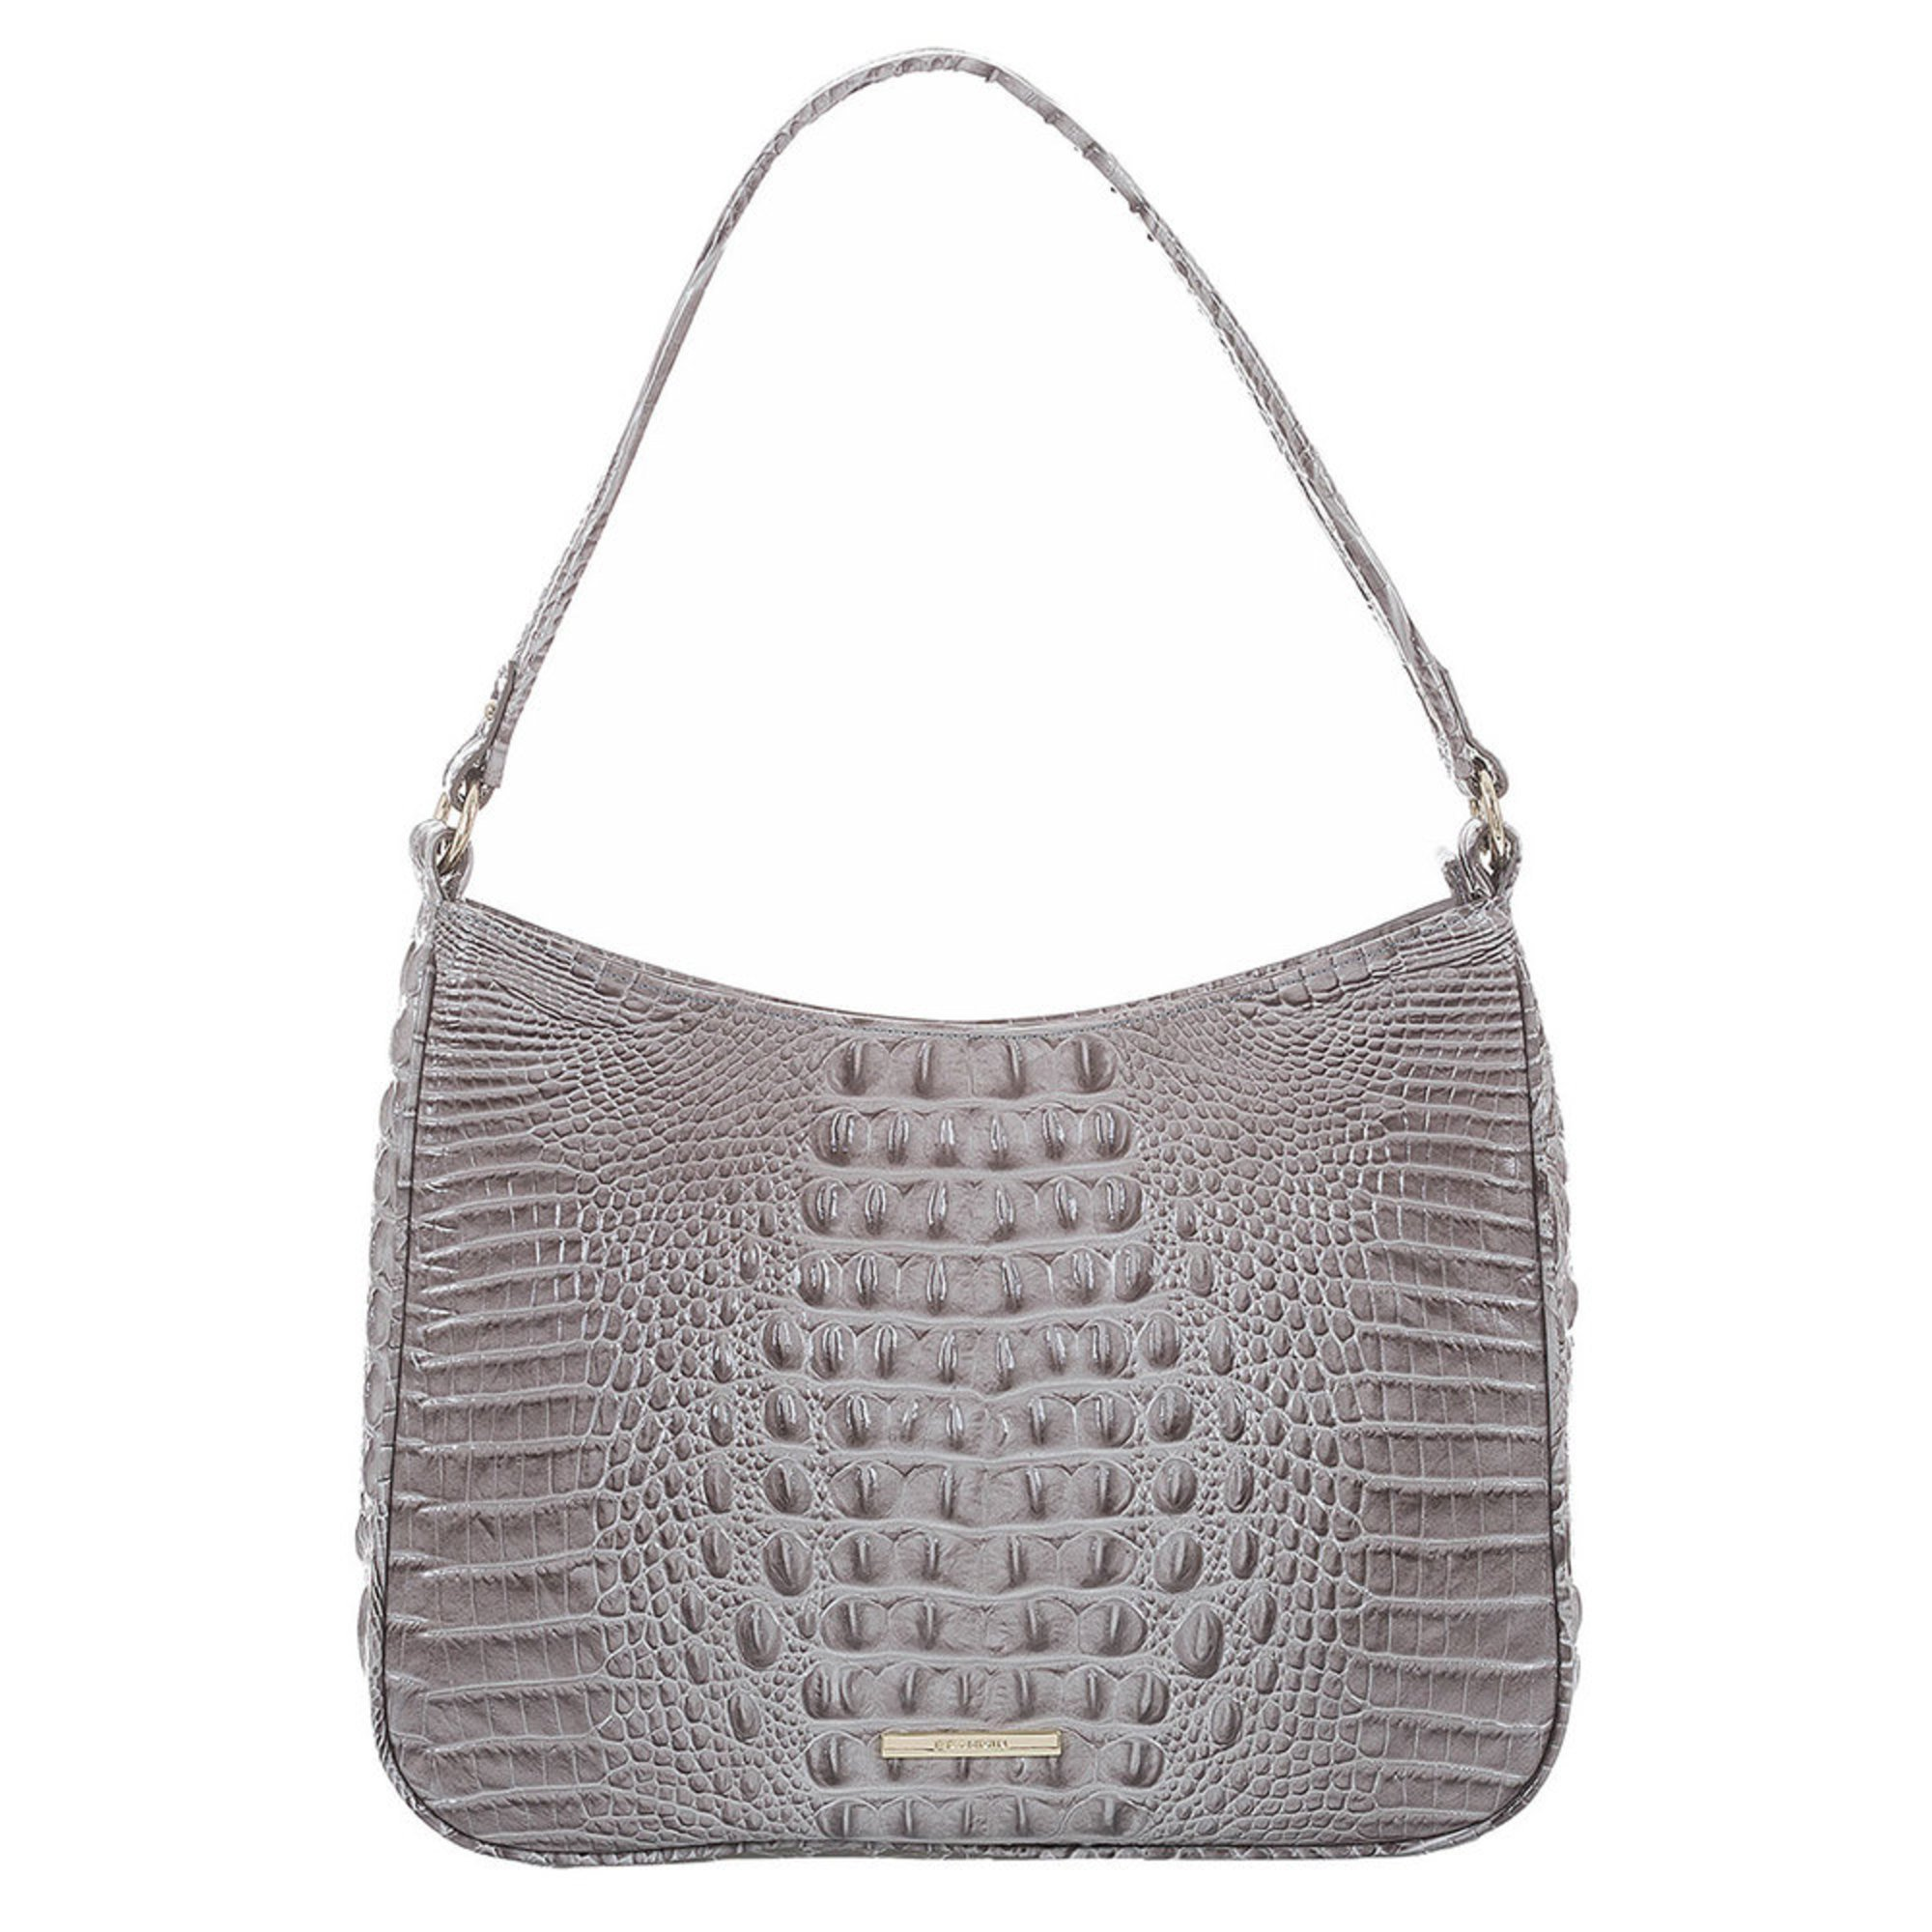 Brahmin Noelle Shoulder Bag Dove Melbourne Bags Handbags Sungl Your Navy Exchange Official Site